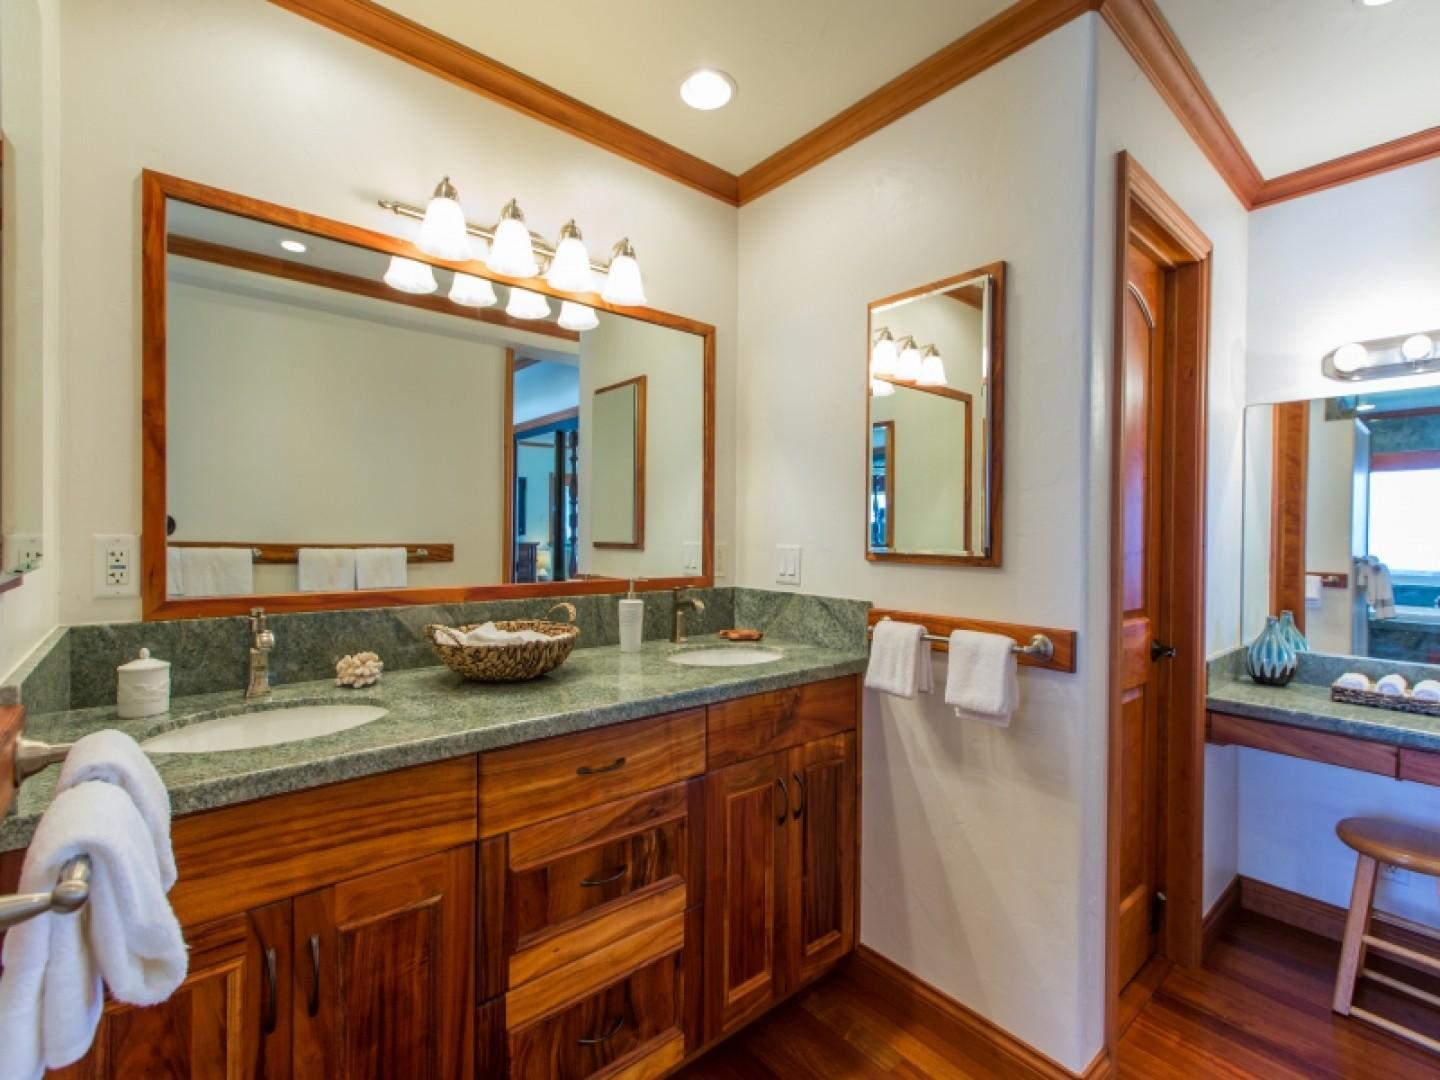 Master suite bathroom with private vanity area.